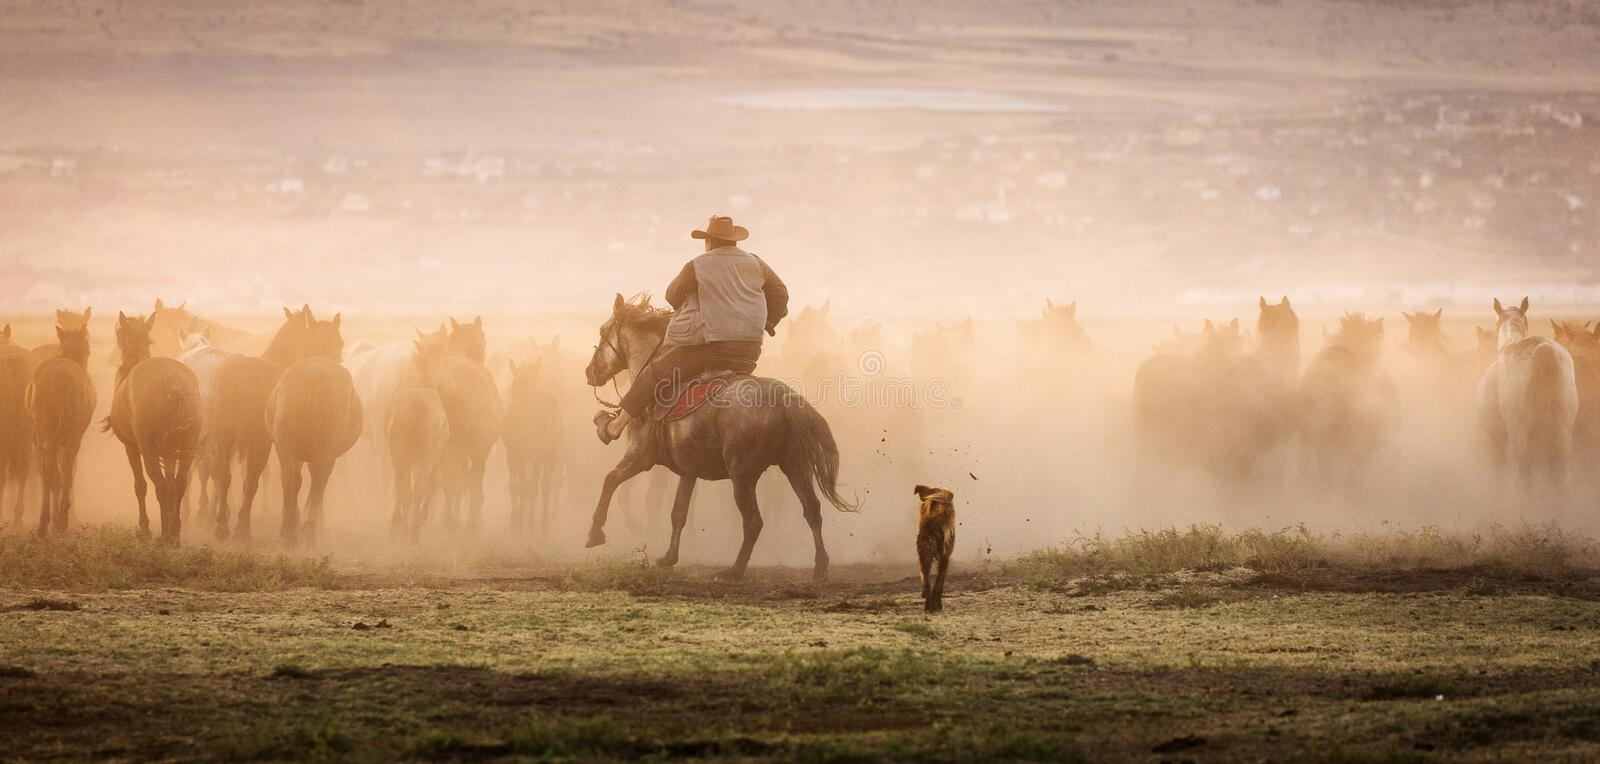 Wild horses leads by a cowboy at sunset with dust in background.  royalty free stock photo